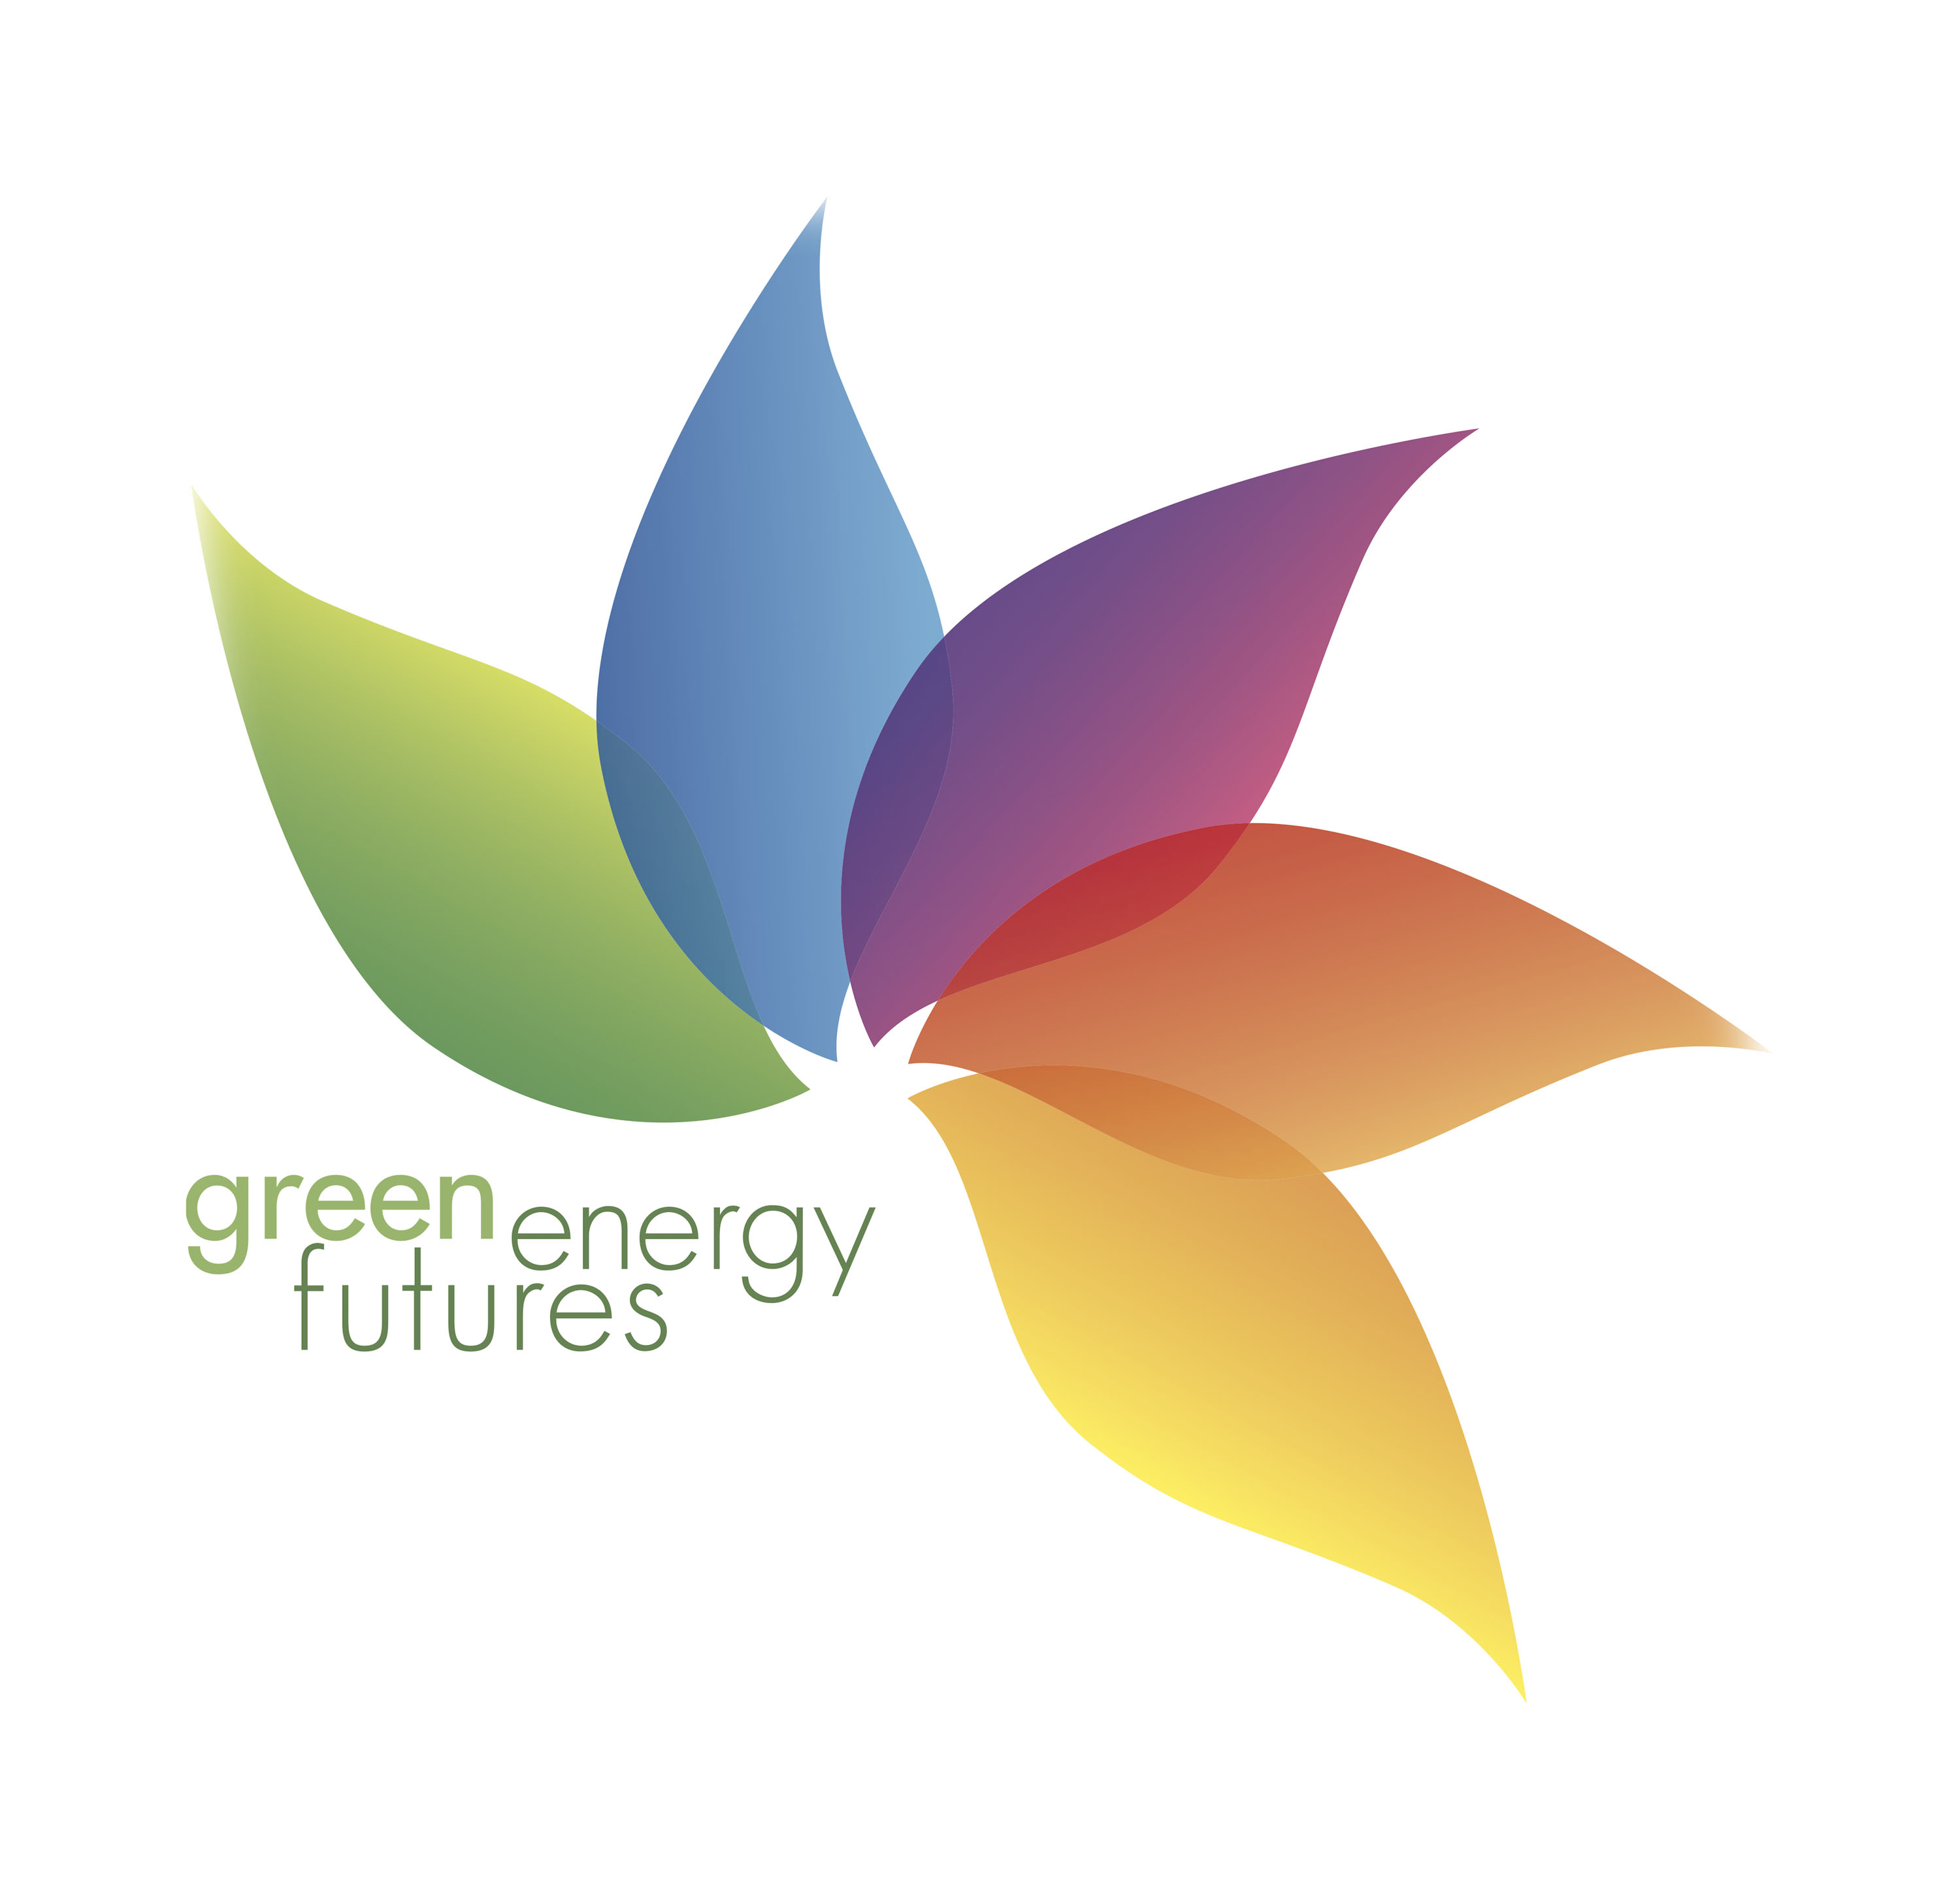 Green Energy Futures The Clean Revolution Running Electric Power To A Garage Or Garden Pond Learn About Code